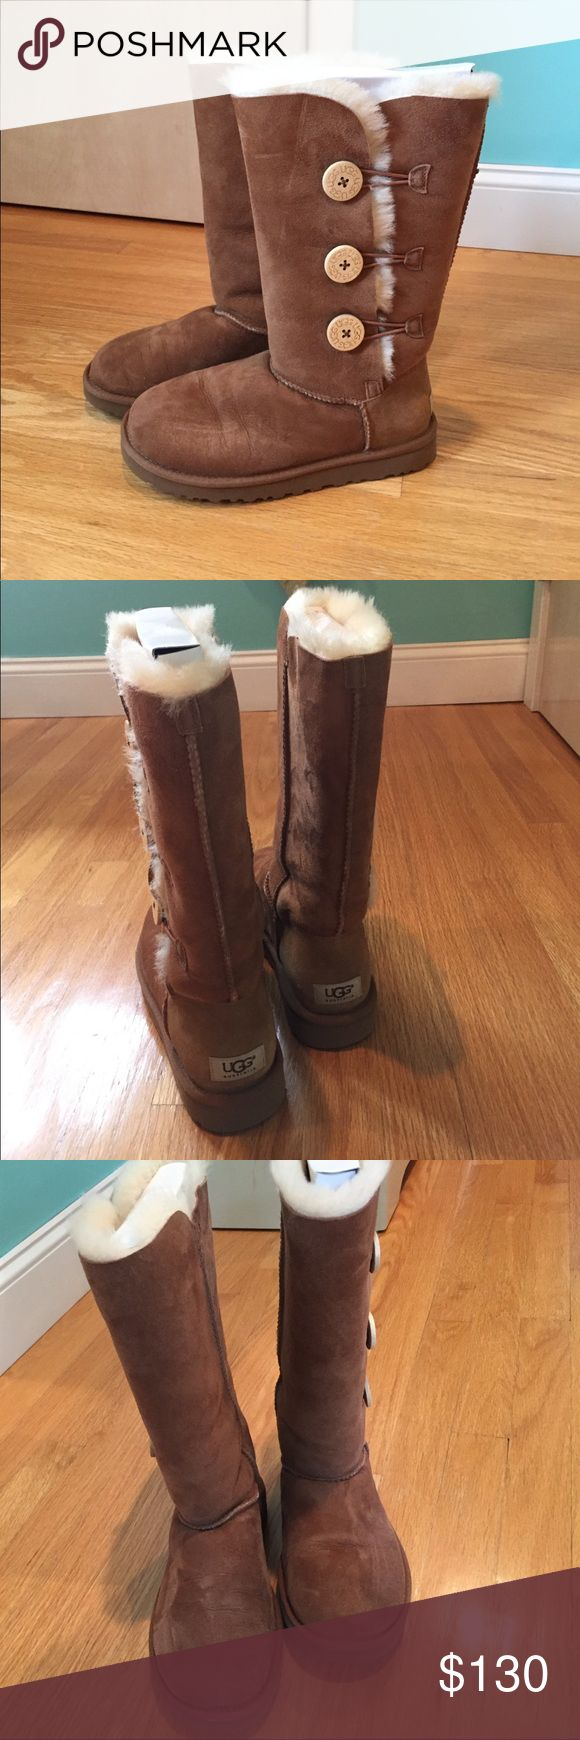 WORN ONCE BAILEY BUTTON TRIPLET UGG BOOTS Worn once! Bailey button triplet, in chestnut. Amazing condition, the fur is still fluffy inside. COMES WITH THE ORIGINAL BOX UGG Shoes